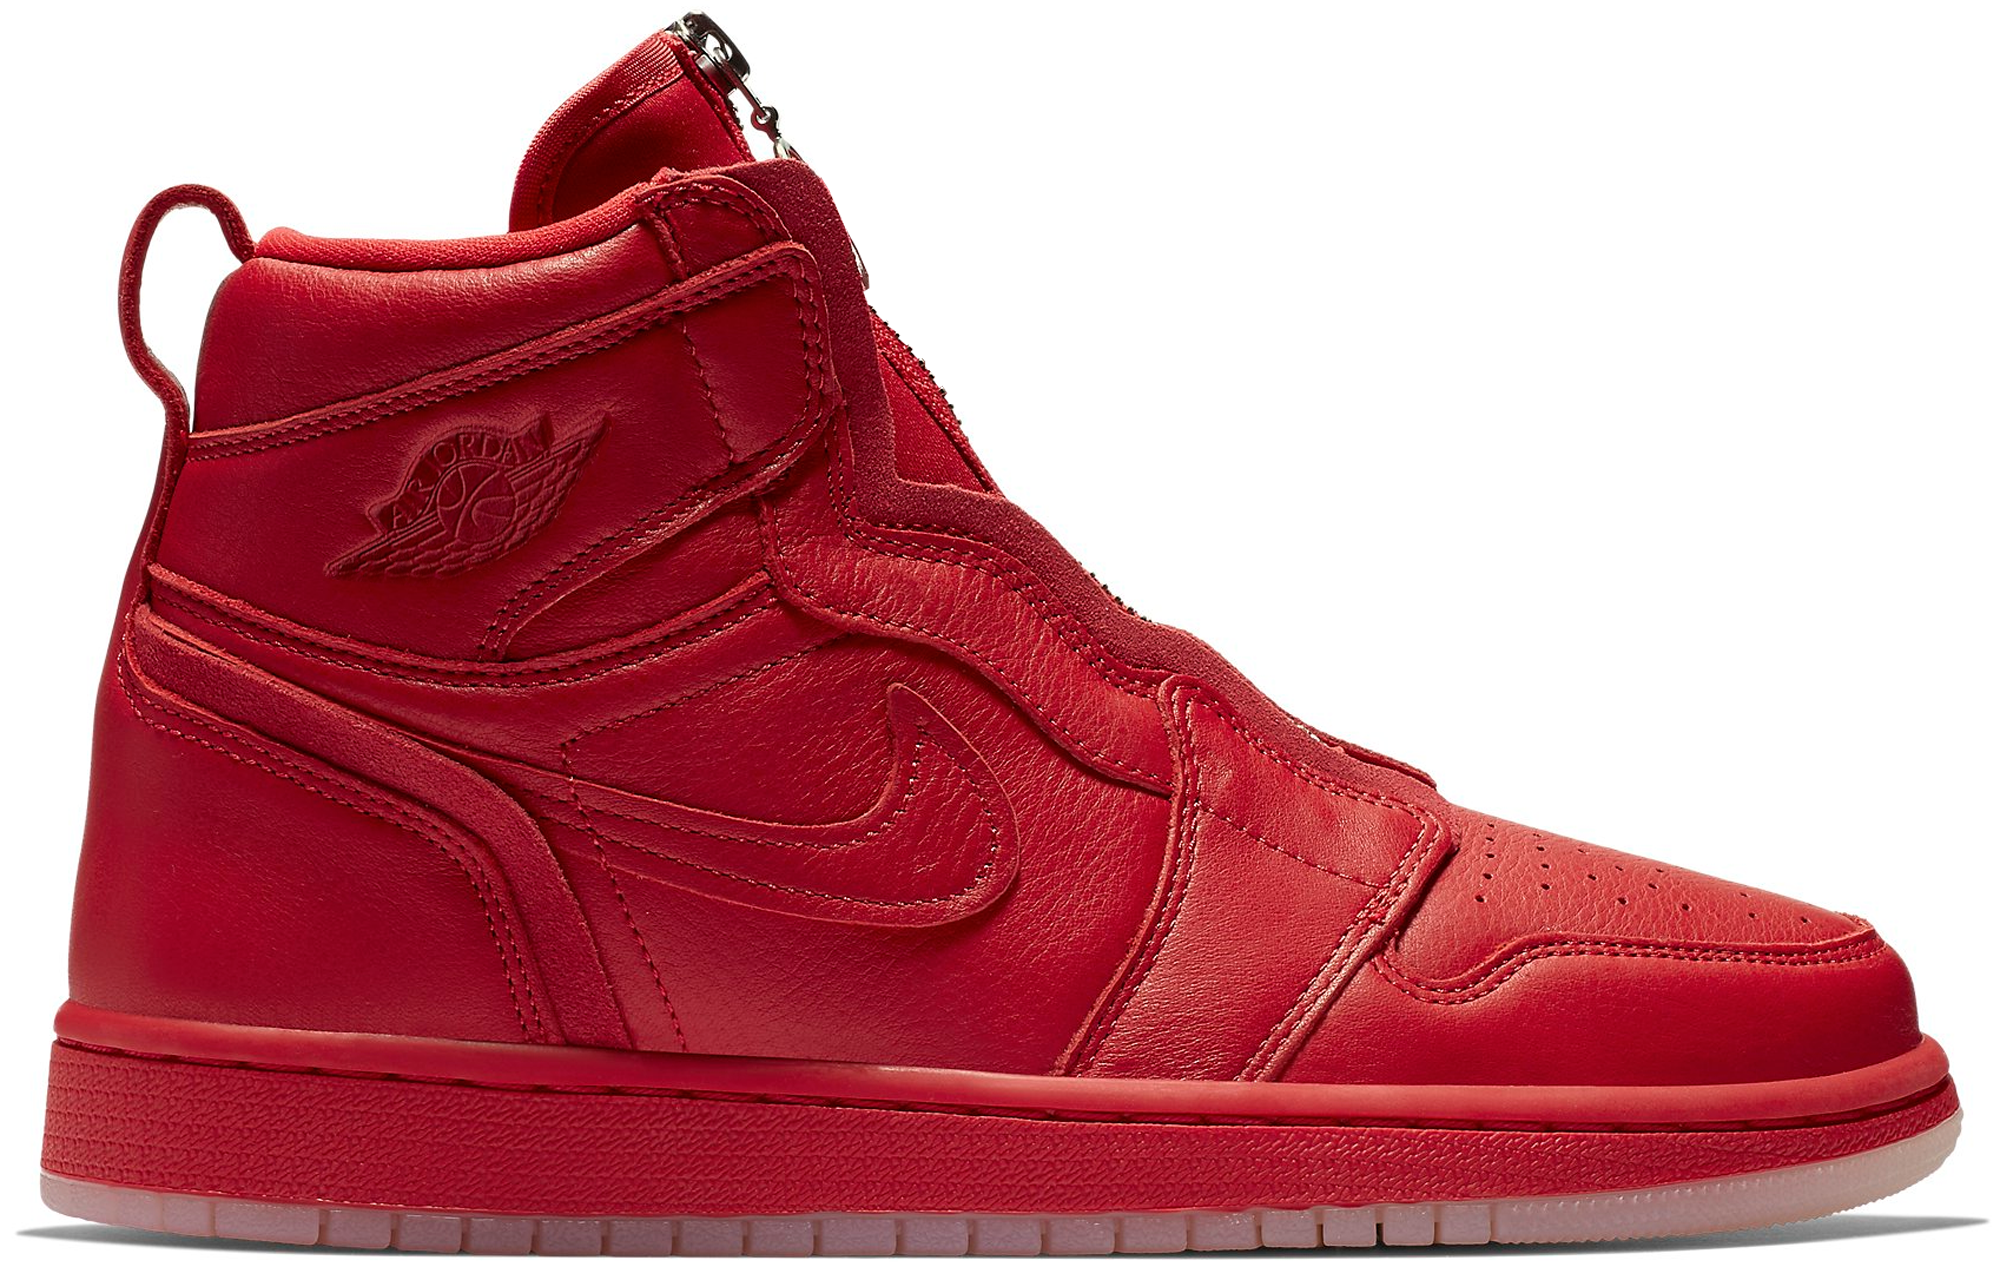 Jordan 1 Retro High Zip AWOK Vogue University Red (W)